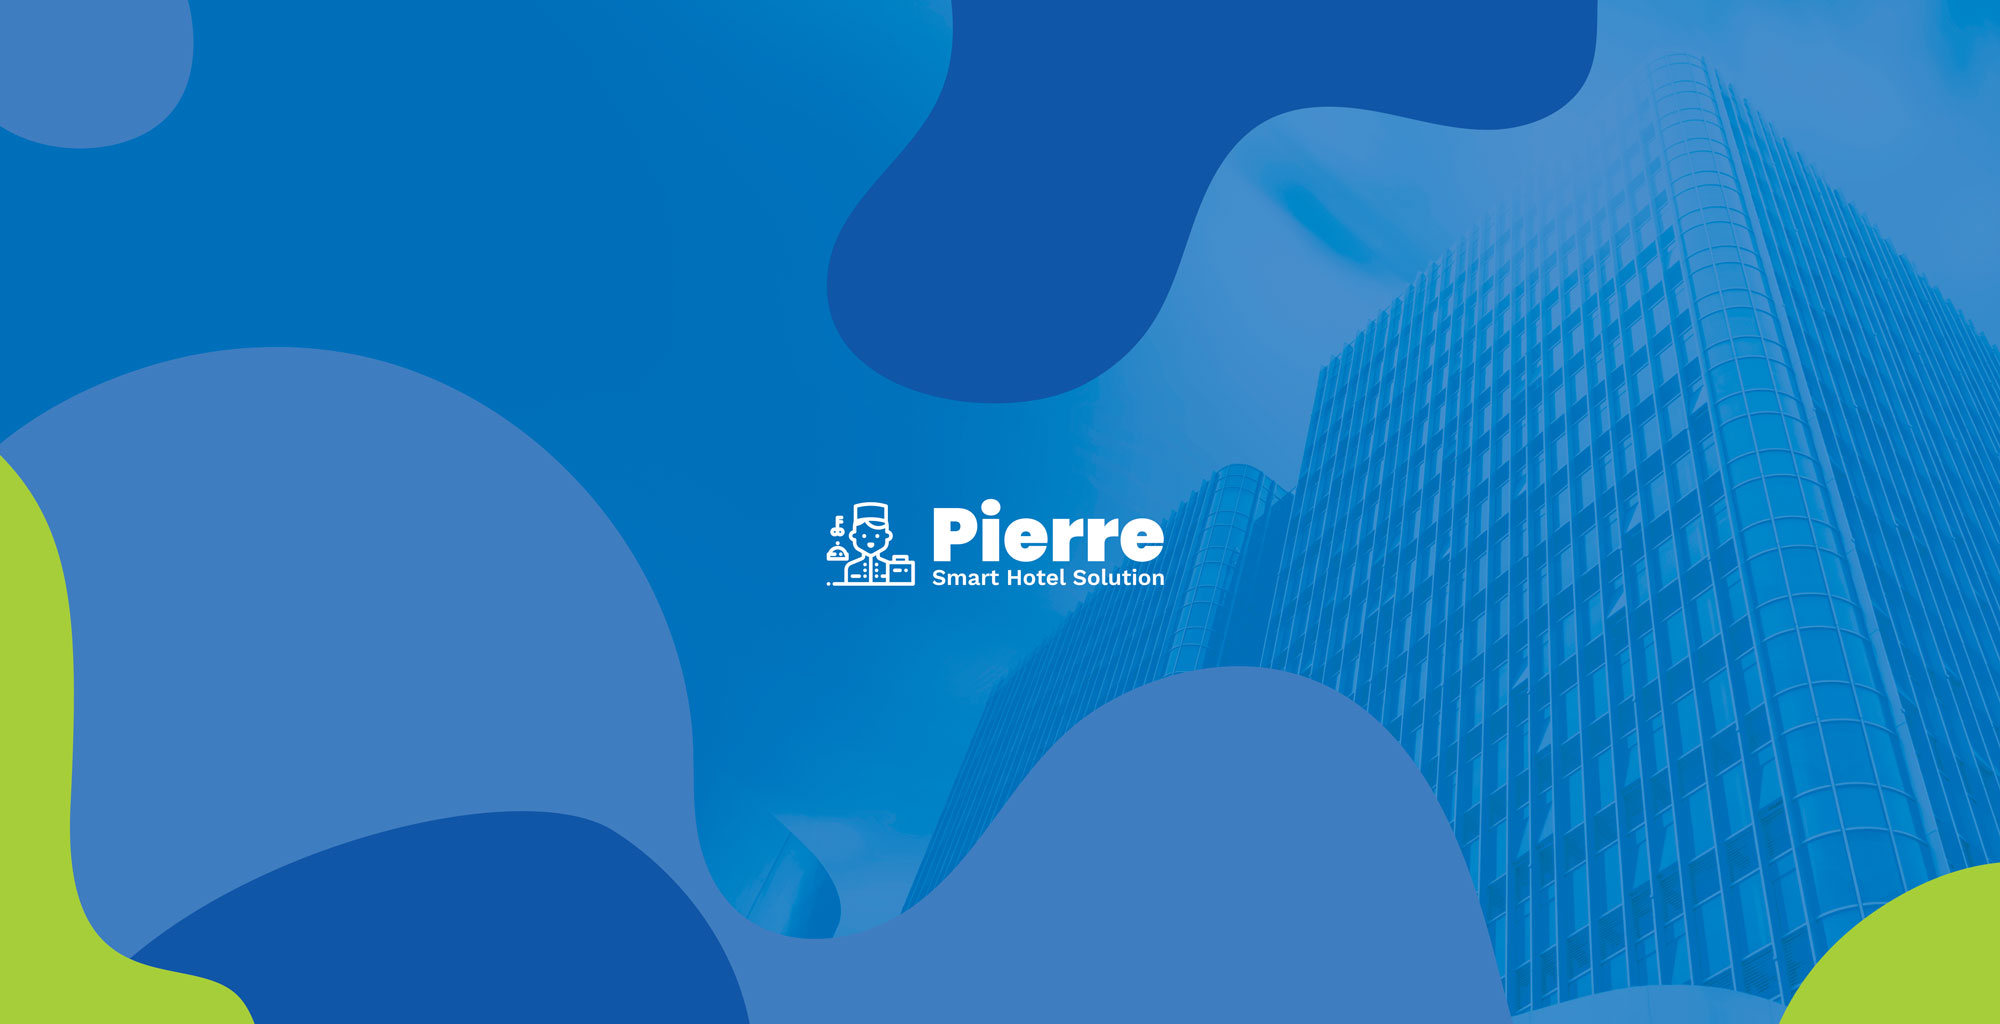 Pierre - Smart Hotel Solution